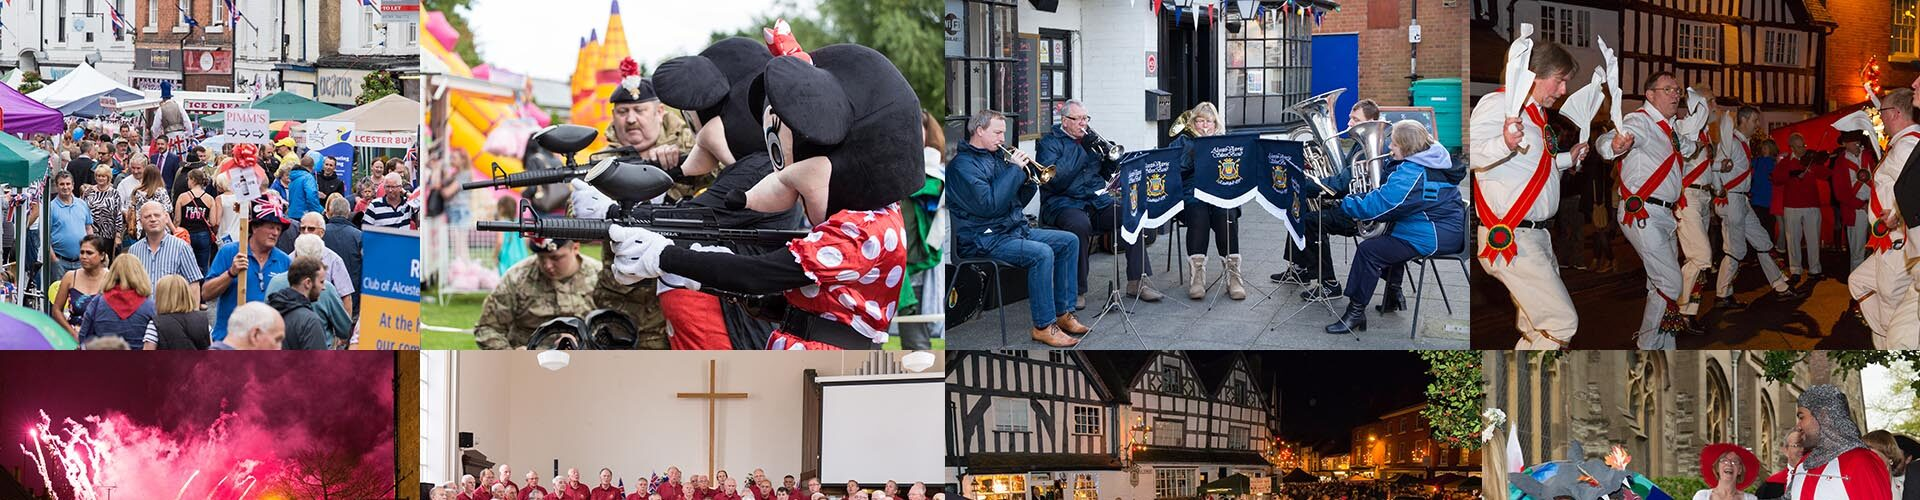 WHAT'S ON IN ALCESTER